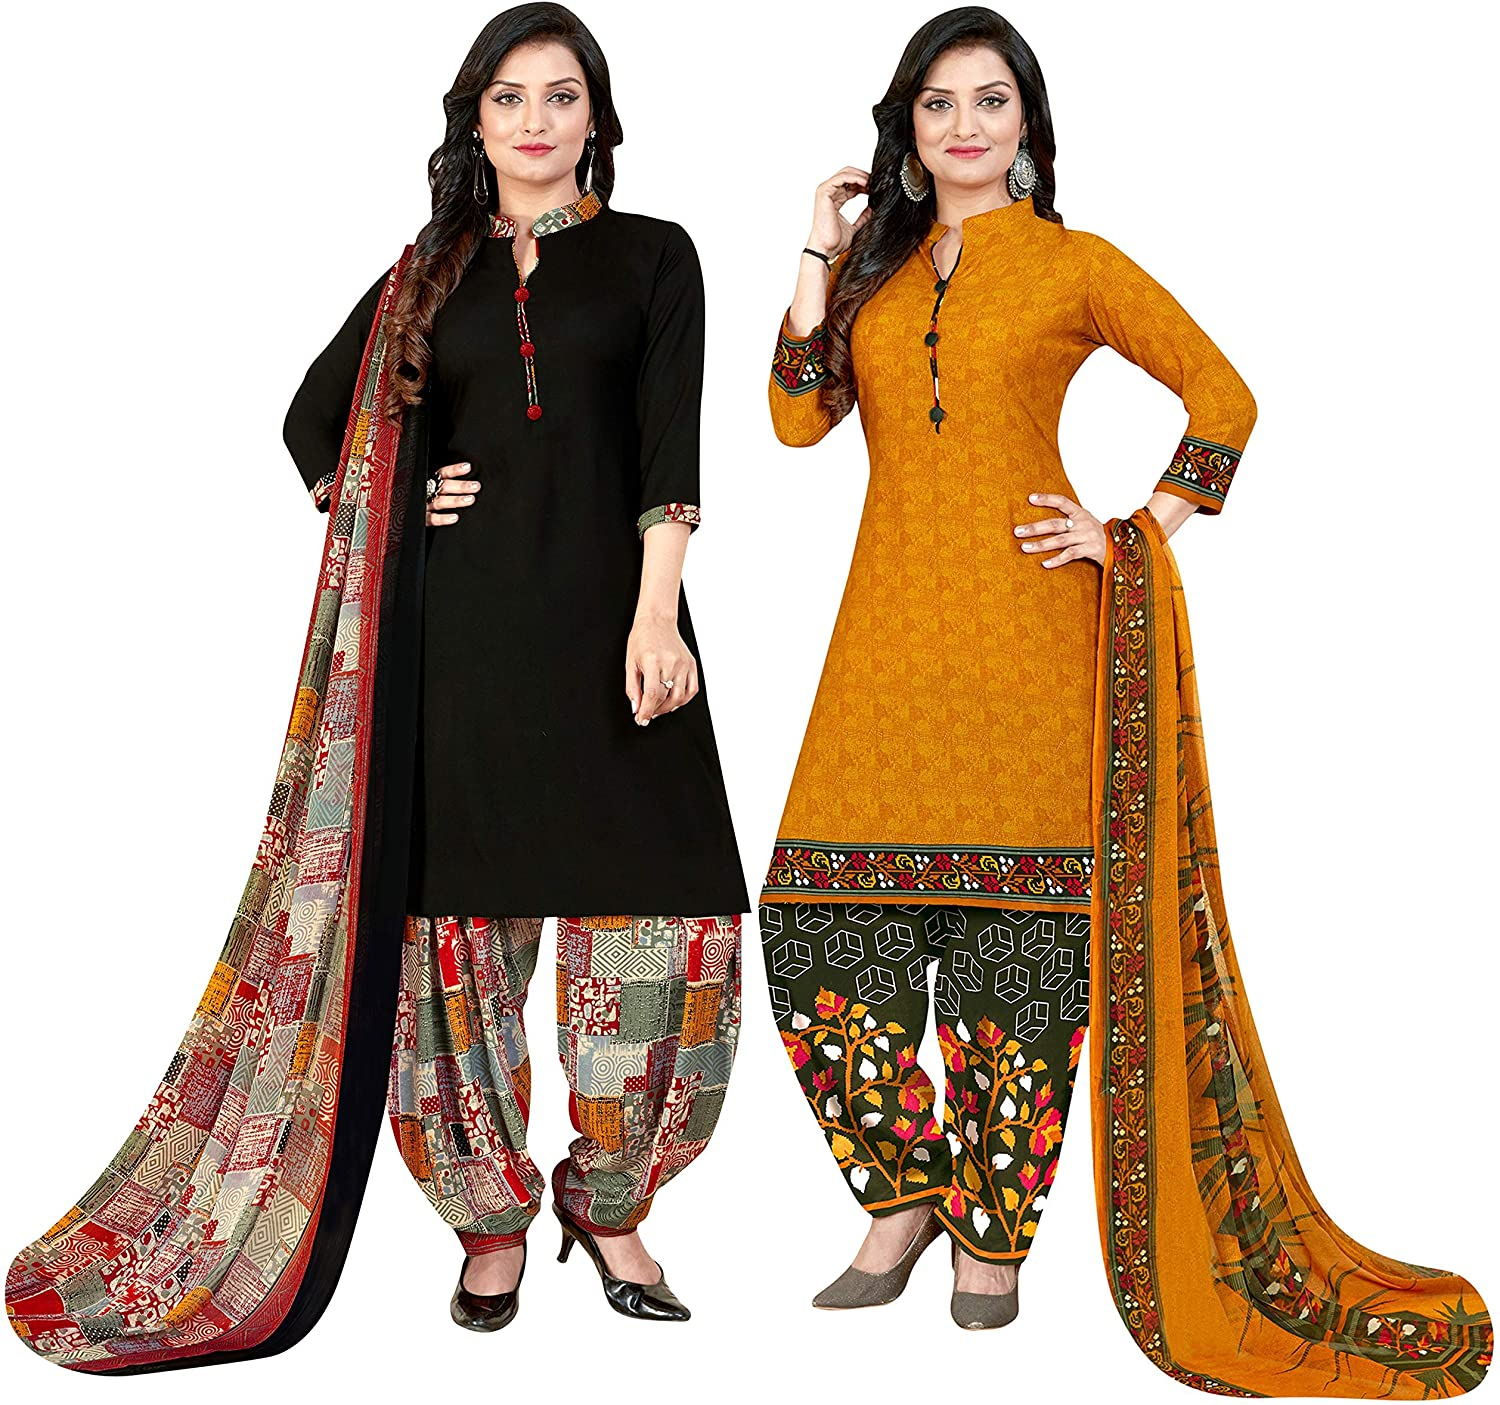 Indian Decor & Attire Women's Black and Yellow Crepe Printed Unstitched Salwar Suit Material (Combo of 2_Free Size)